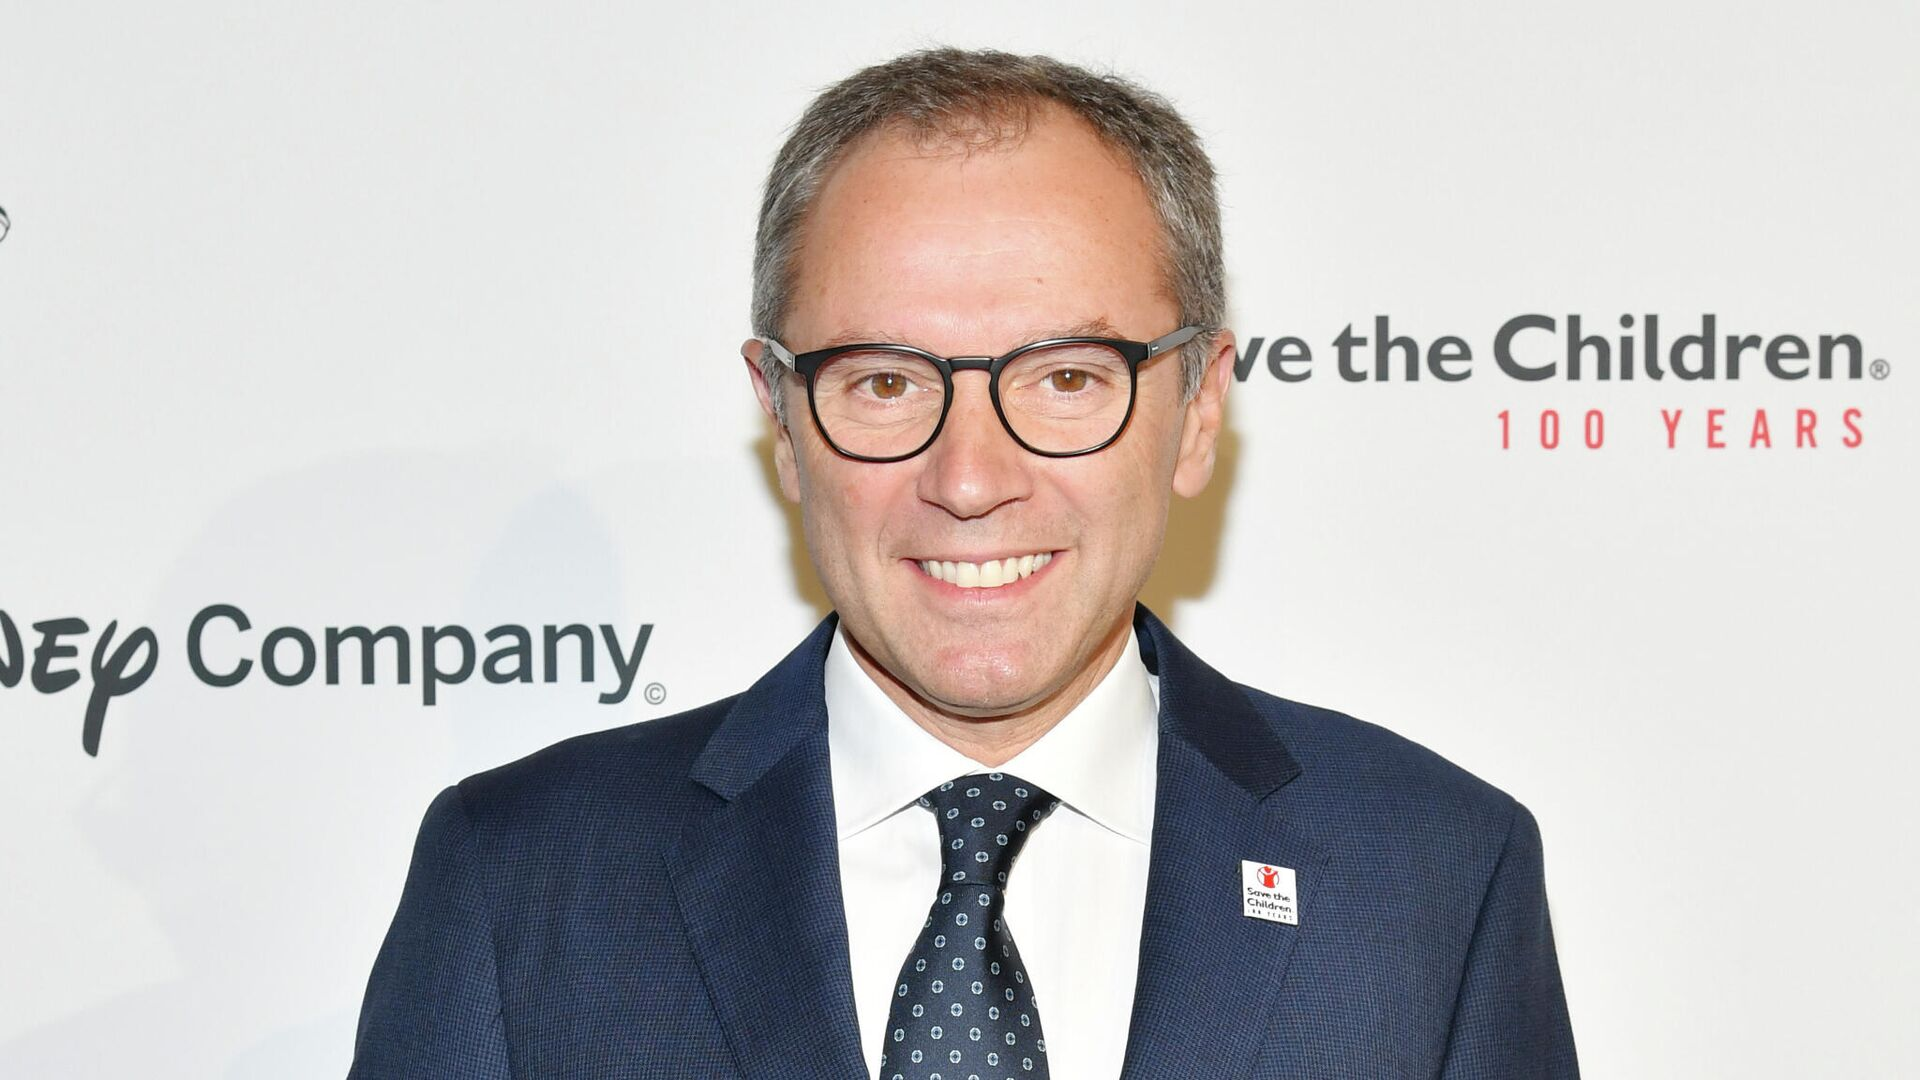 BEVERLY HILLS, CALIFORNIA - OCTOBER 02: Stefano Domenicali attends Save the Children's Centennial Celebration: Once In A Lifetime Presented By The Walt Disney Company at The Beverly Hilton Hotel on October 02, 2019 in Beverly Hills, California.   Amy Sussman/Getty Images/AFP - РИА Новости, 1920, 23.09.2020